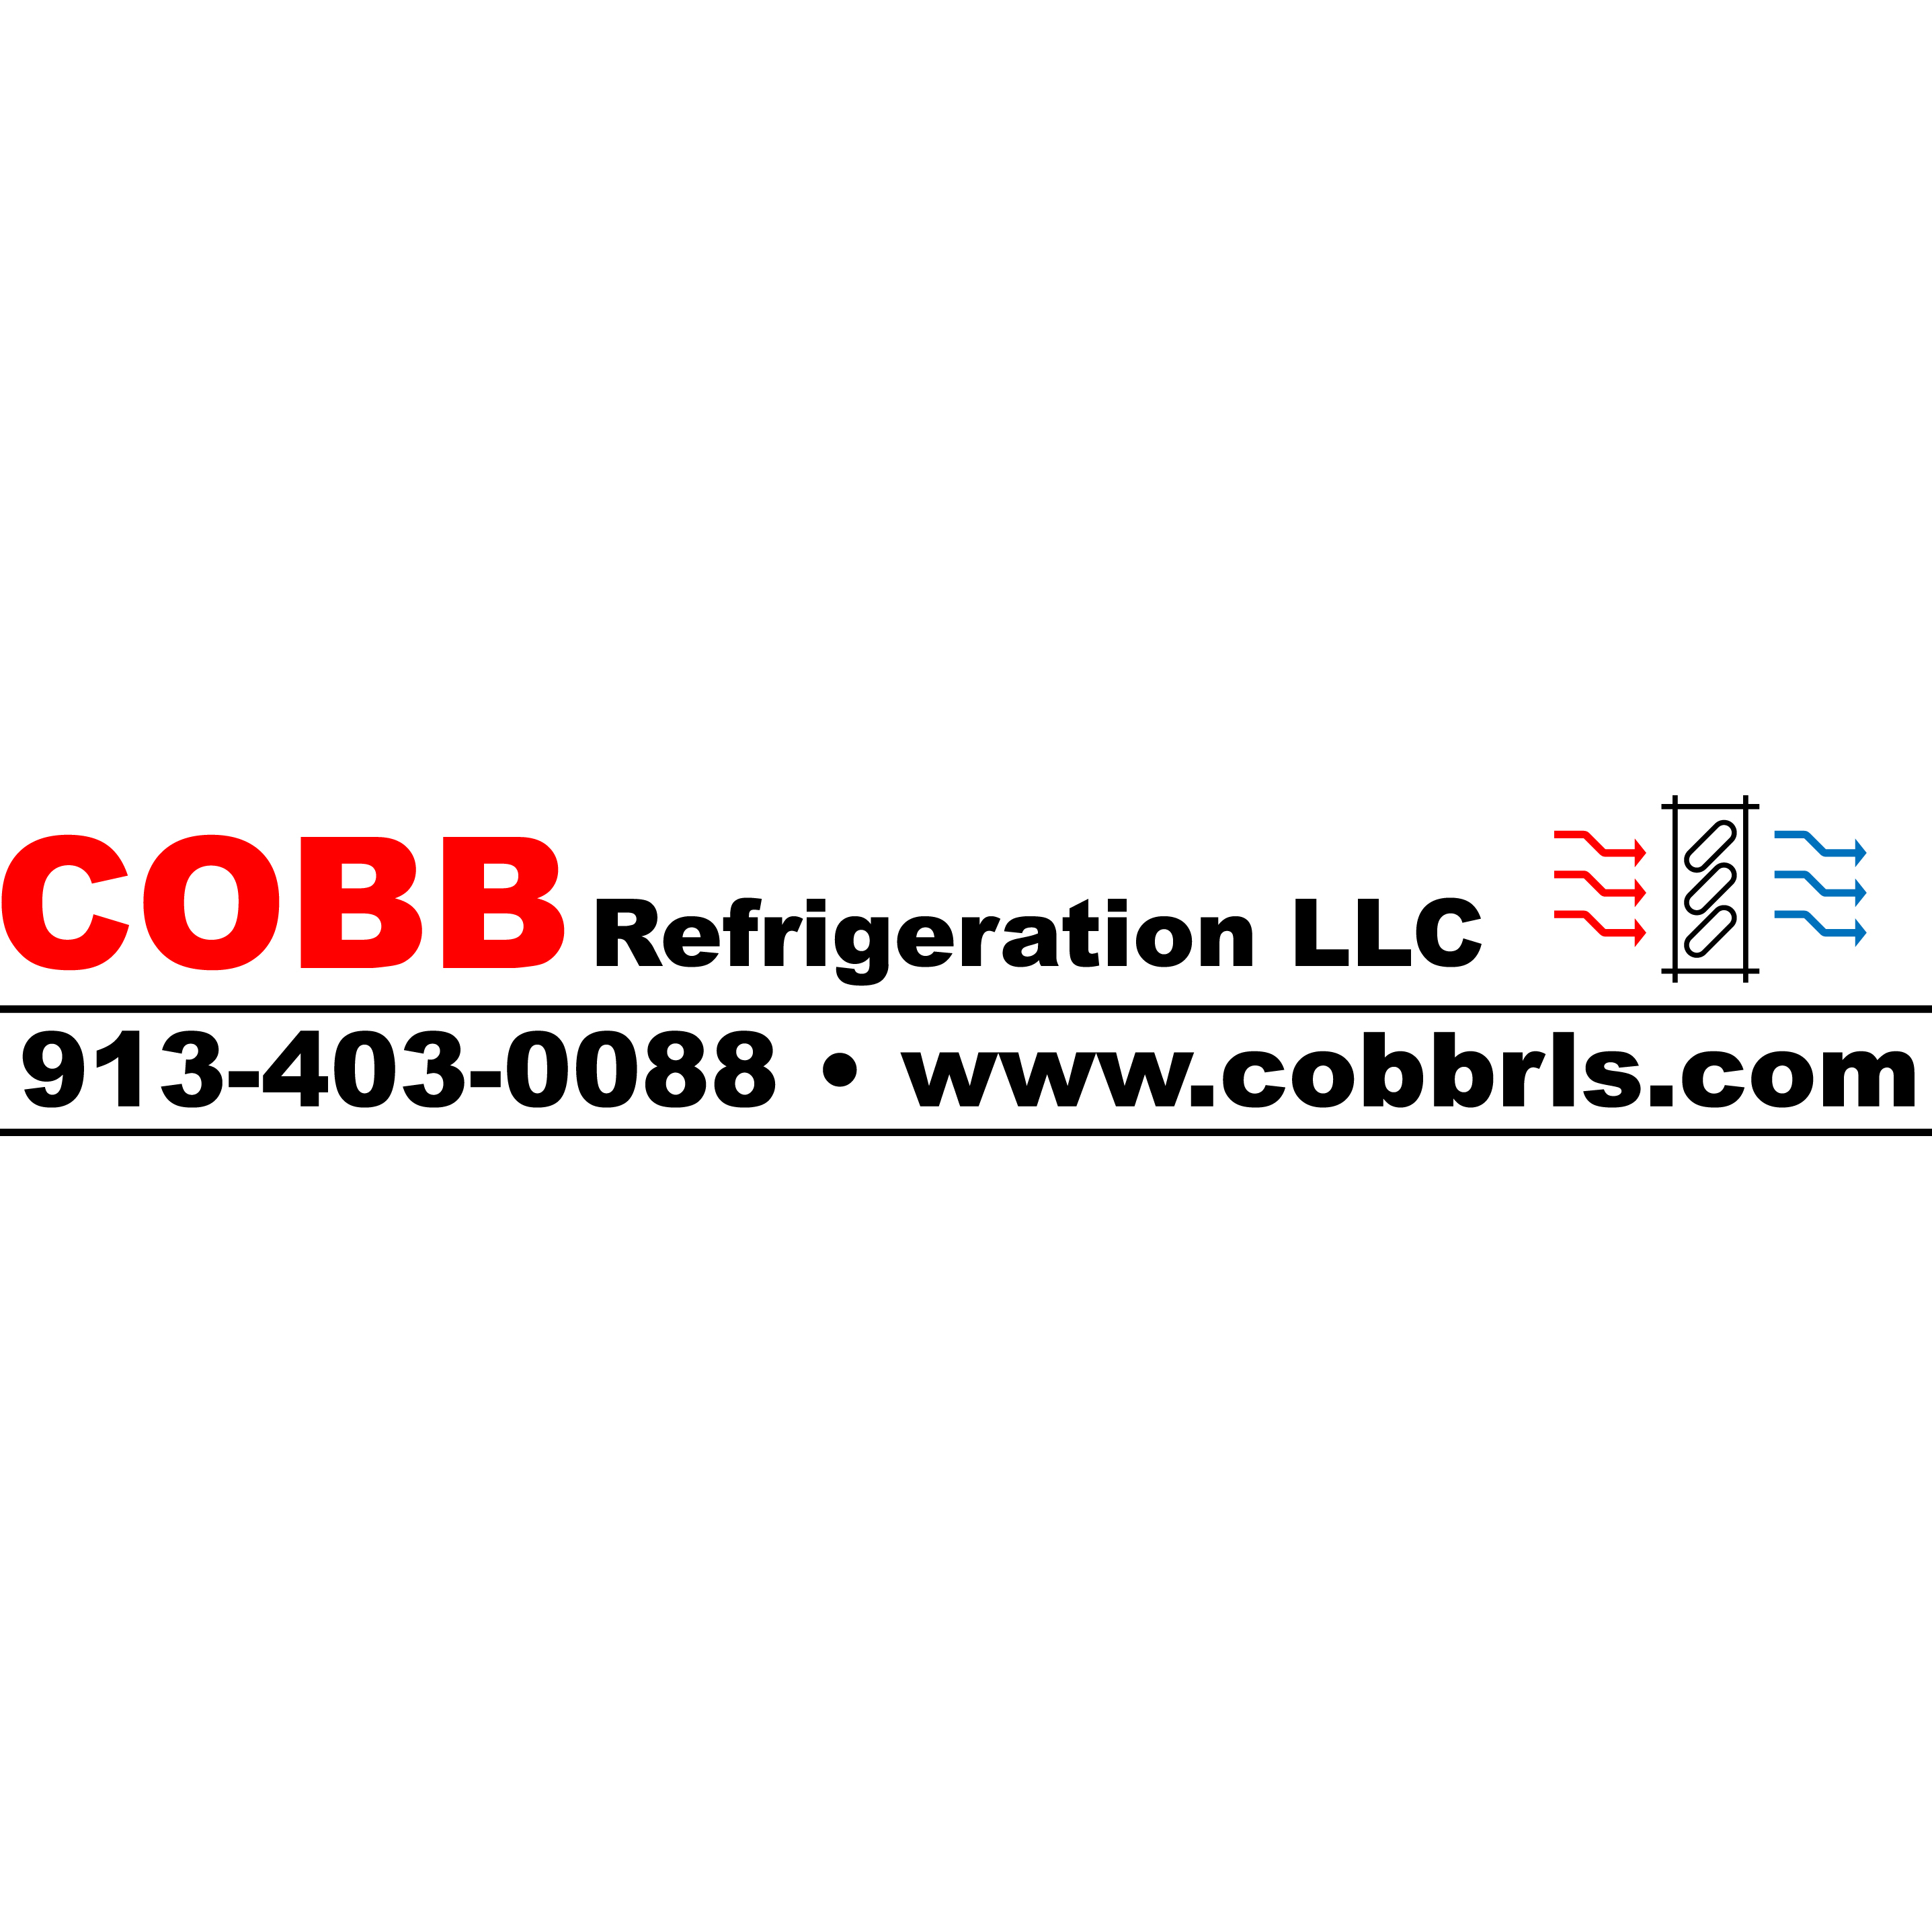 COBB Refrigeration & Laboratory Services, LLC